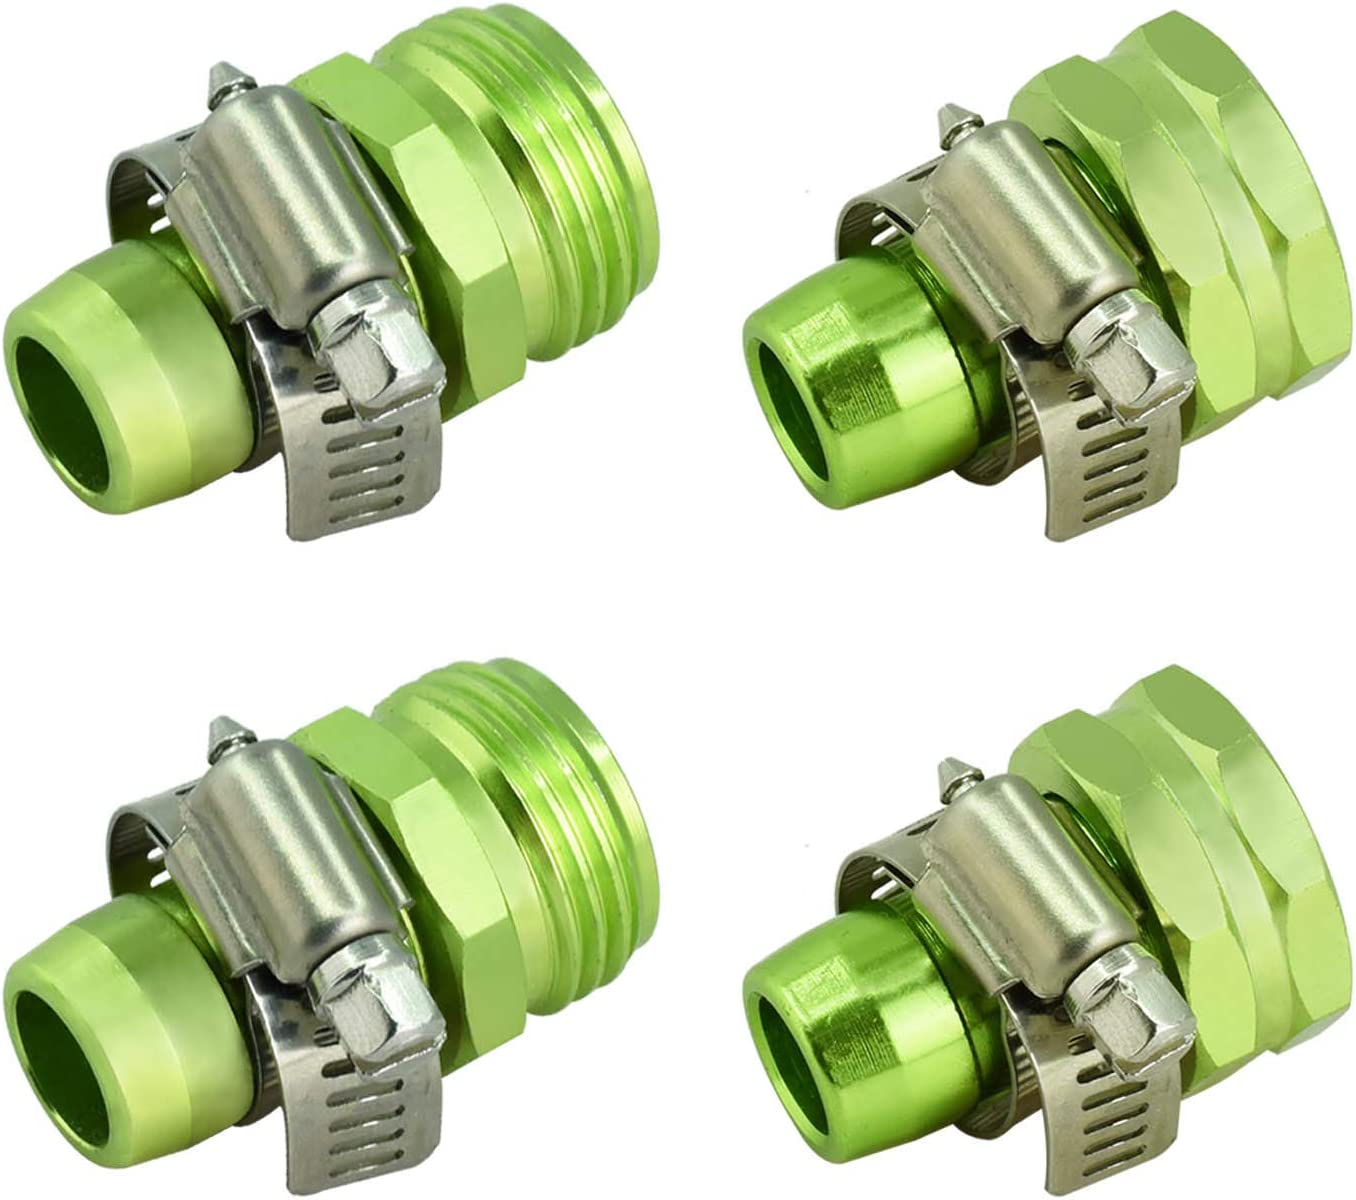 PLG Garden Hose Repair Connector with Clamps